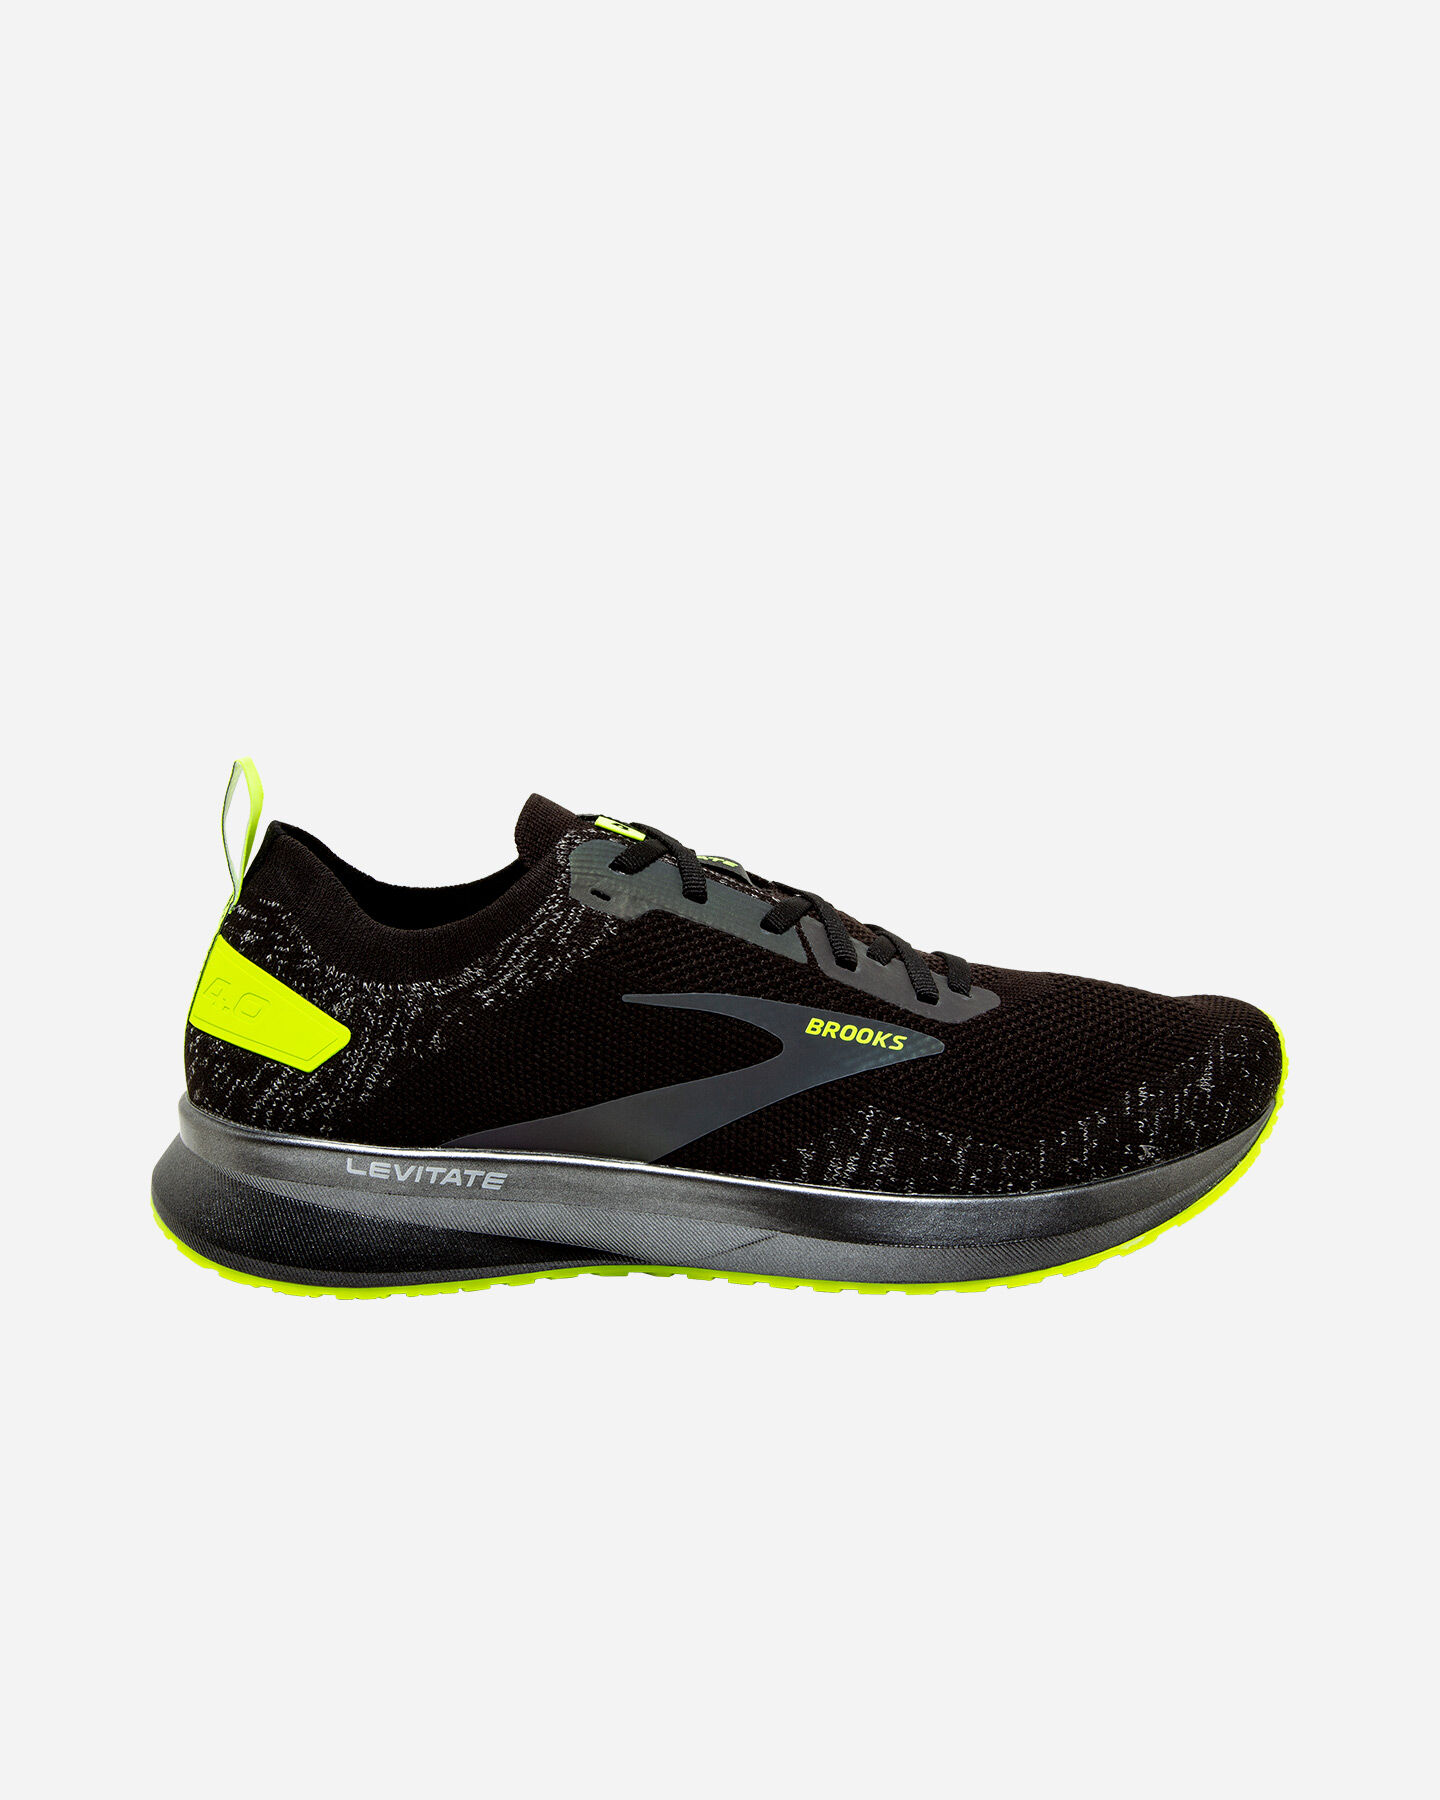 Scarpe running BROOKS LEVITATE 4 M S5243969 scatto 0